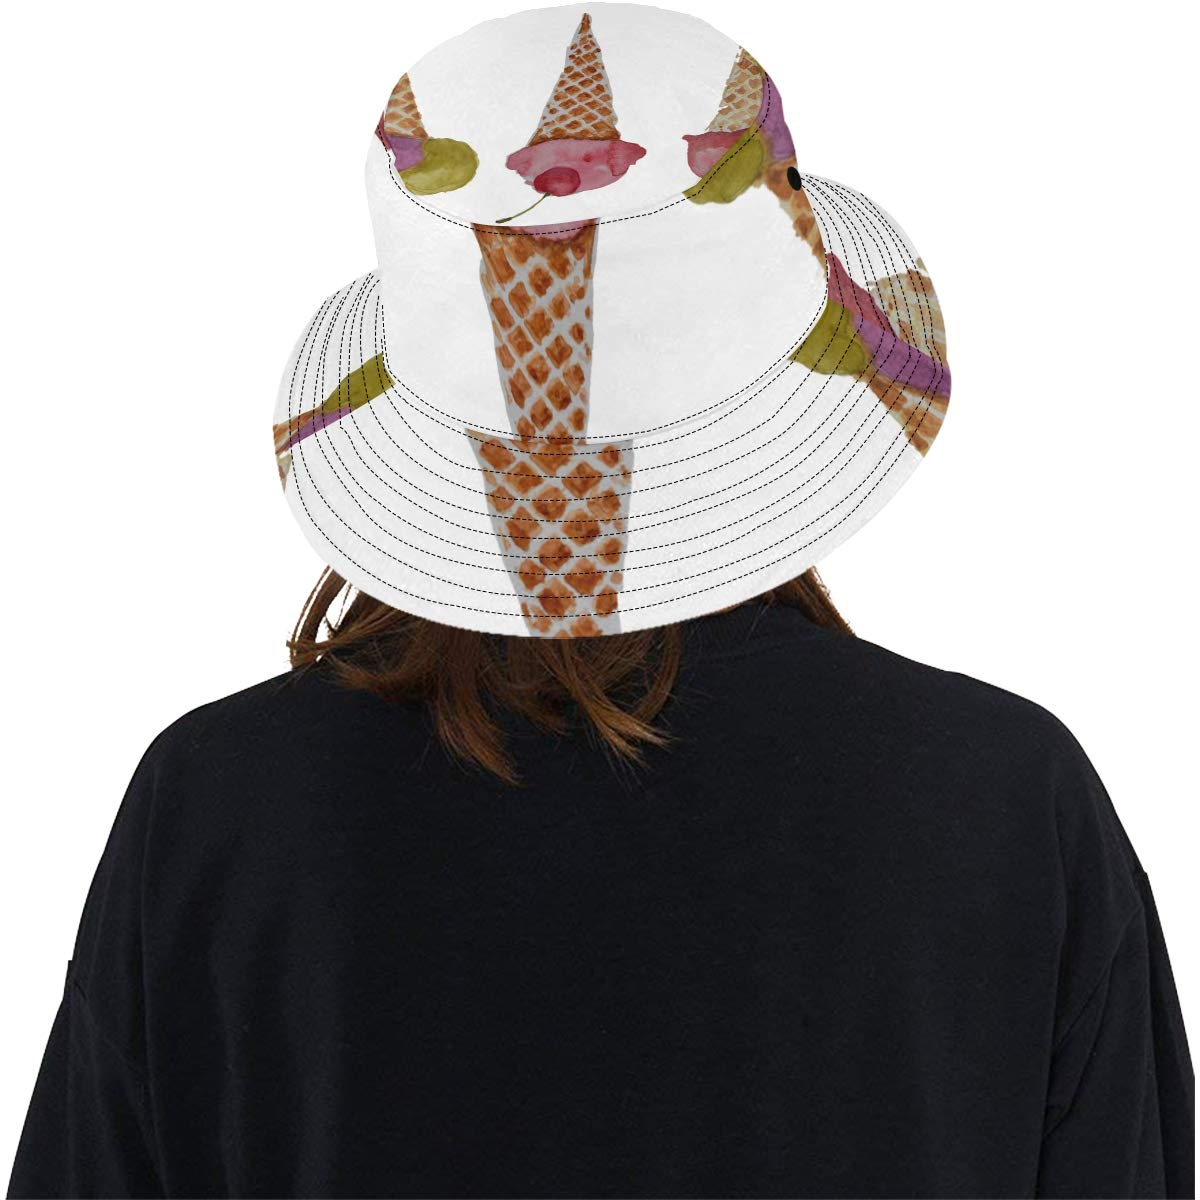 Carton Ice Cream Cones New Summer Unisex Cotton Fashion Fishing Sun Bucket Hats for Kid Teens Women and Men with Customize Top Packable Fisherman Cap for Outdoor Travel